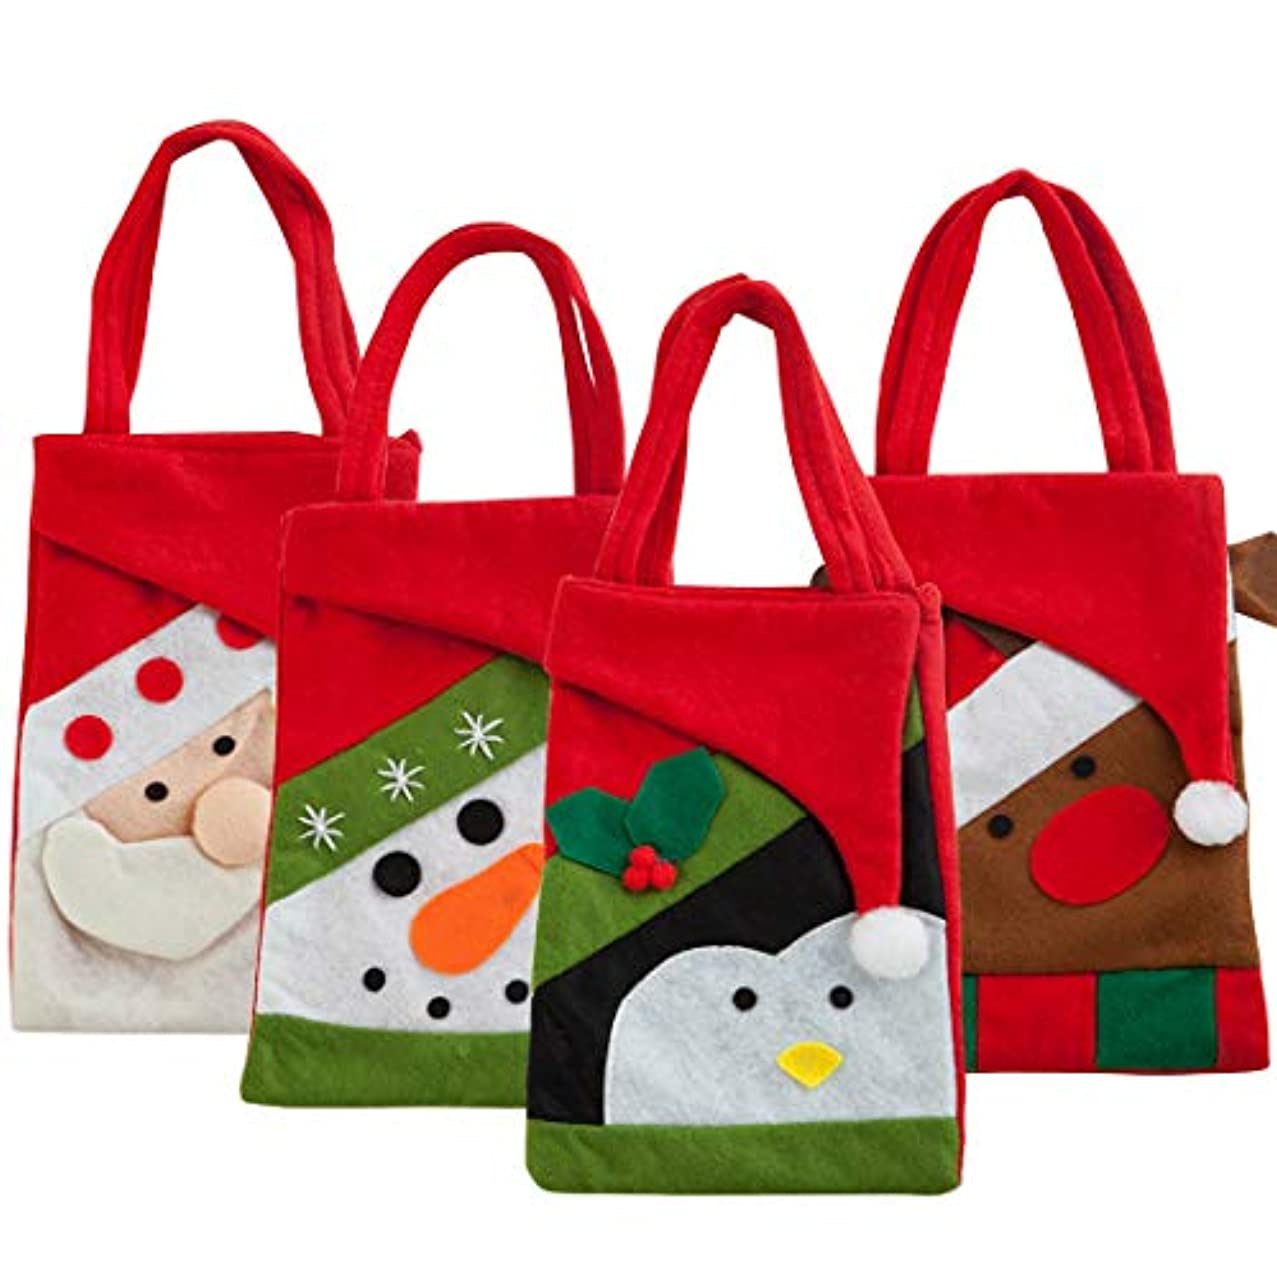 4Pcs Christmas Candy Gift Bags, Christmas Candy Treat Bags Santa Tote Handbag with Handle Portable Candy Baskets Gift Wrap for Christmas Xmas Ornaments Wedding Party Decoration